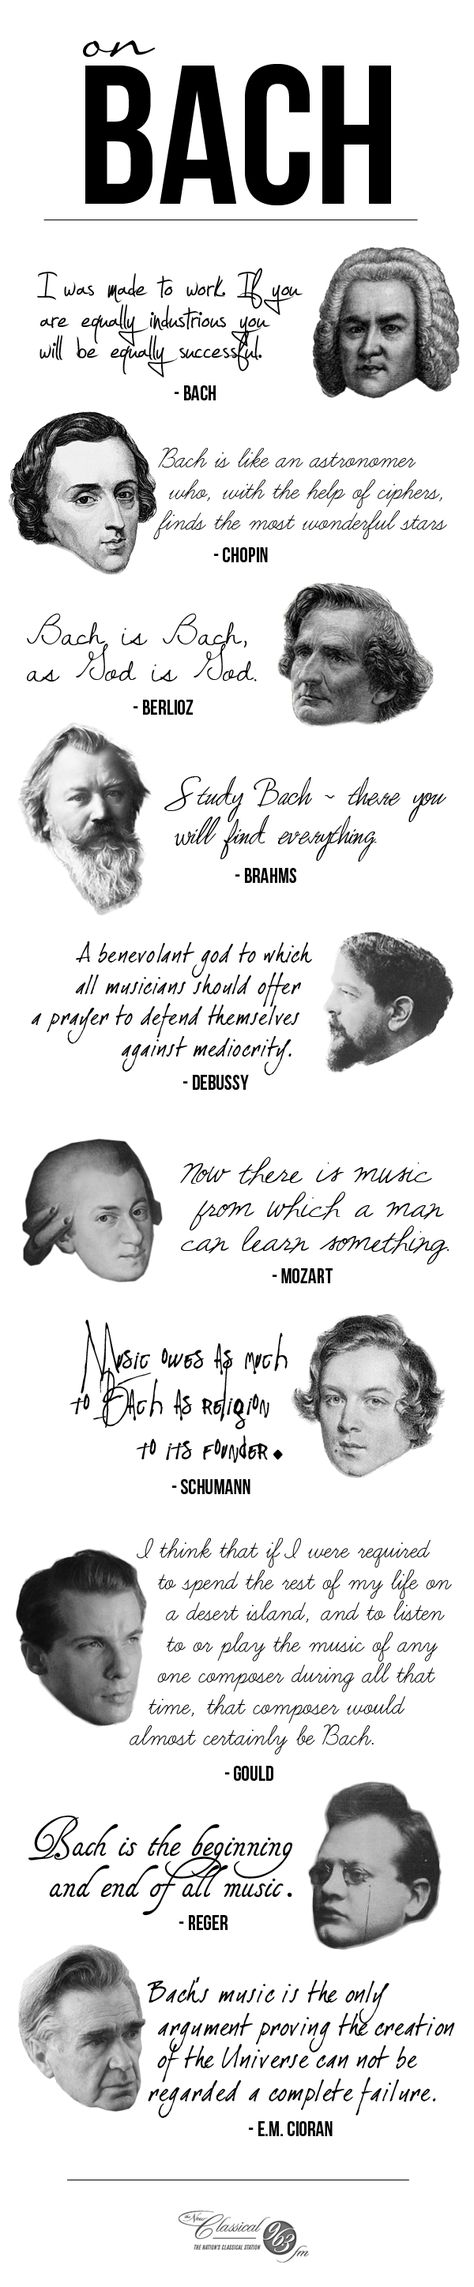 In honor of Bach's 264th anniversary of his passing, here's what some composers had to say about him!